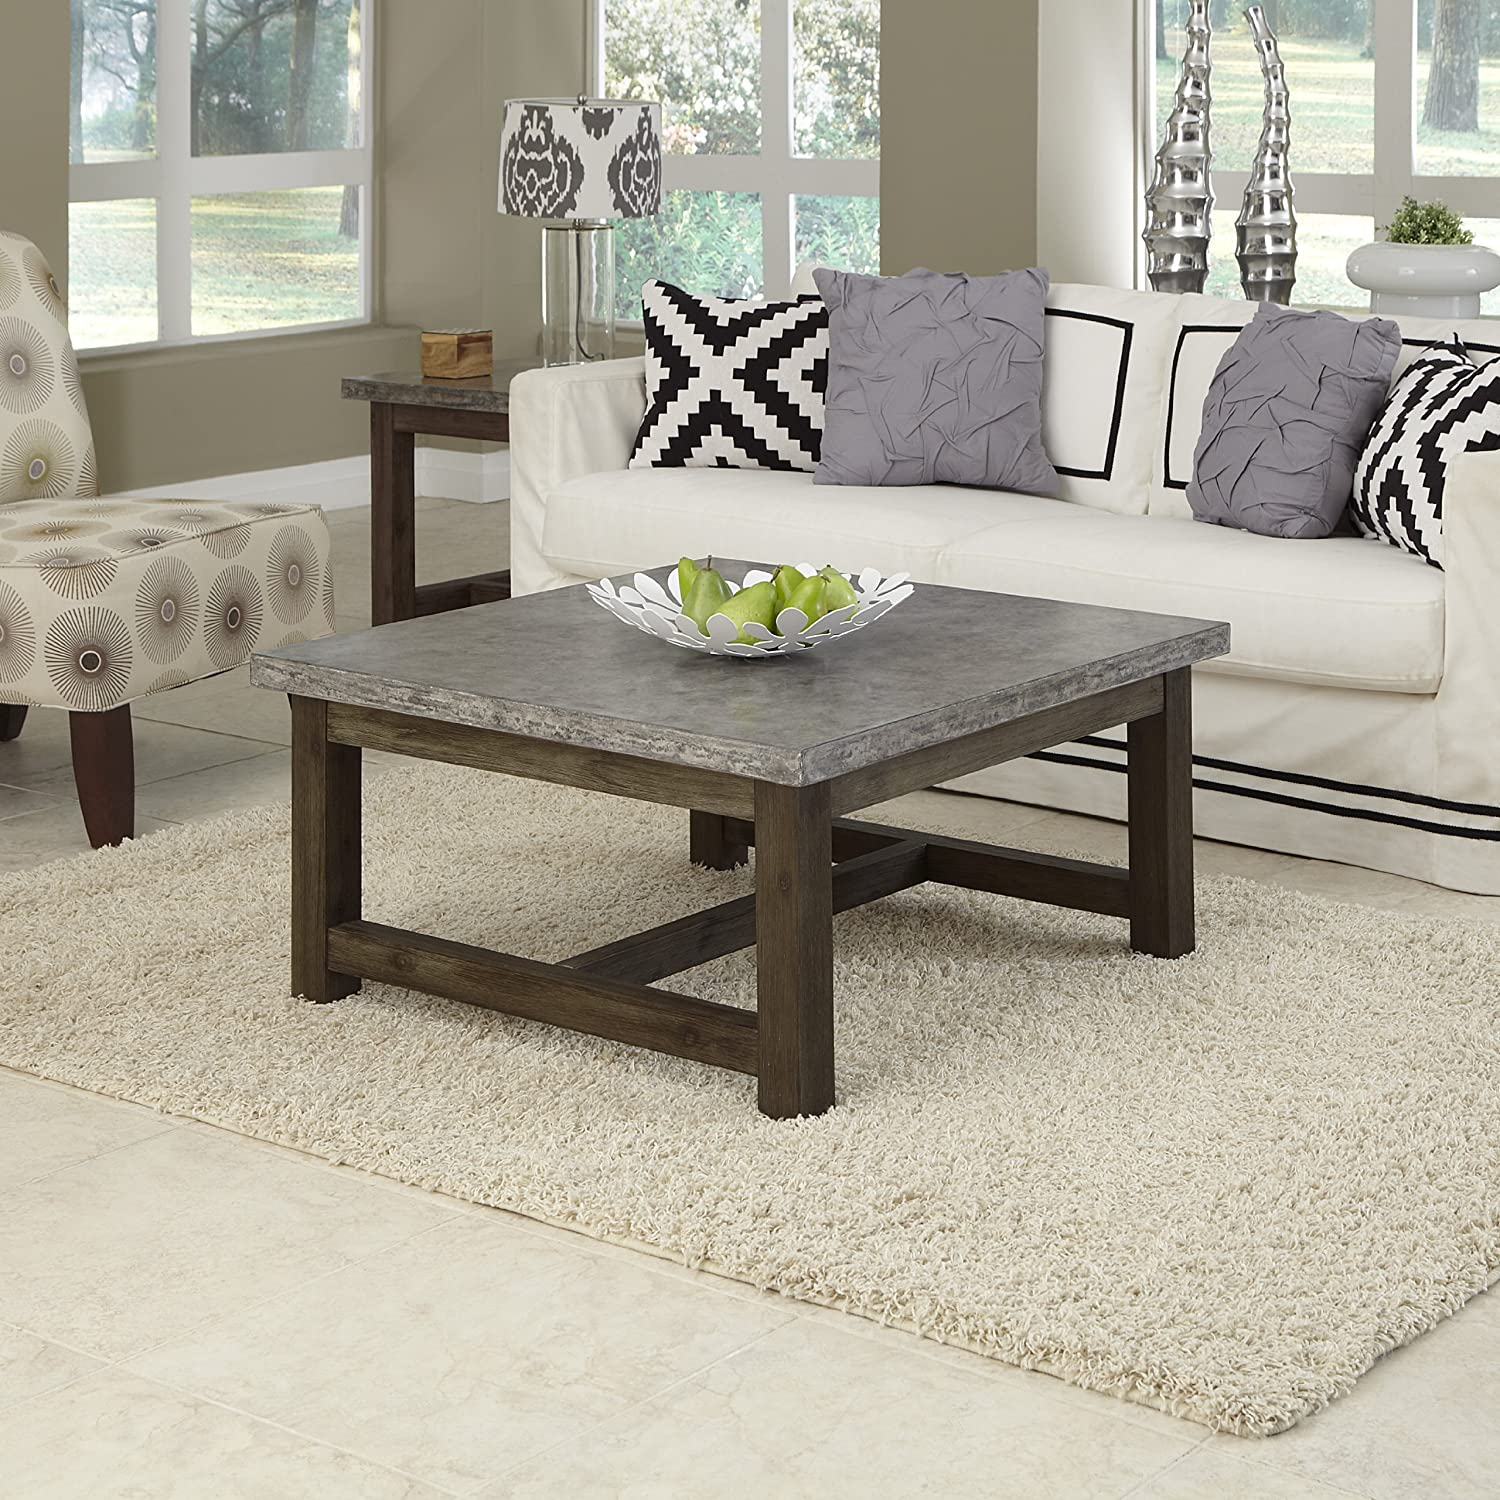 Amazon home styles 5133 21 concrete chic square coffee table amazon home styles 5133 21 concrete chic square coffee table kitchen dining geotapseo Gallery